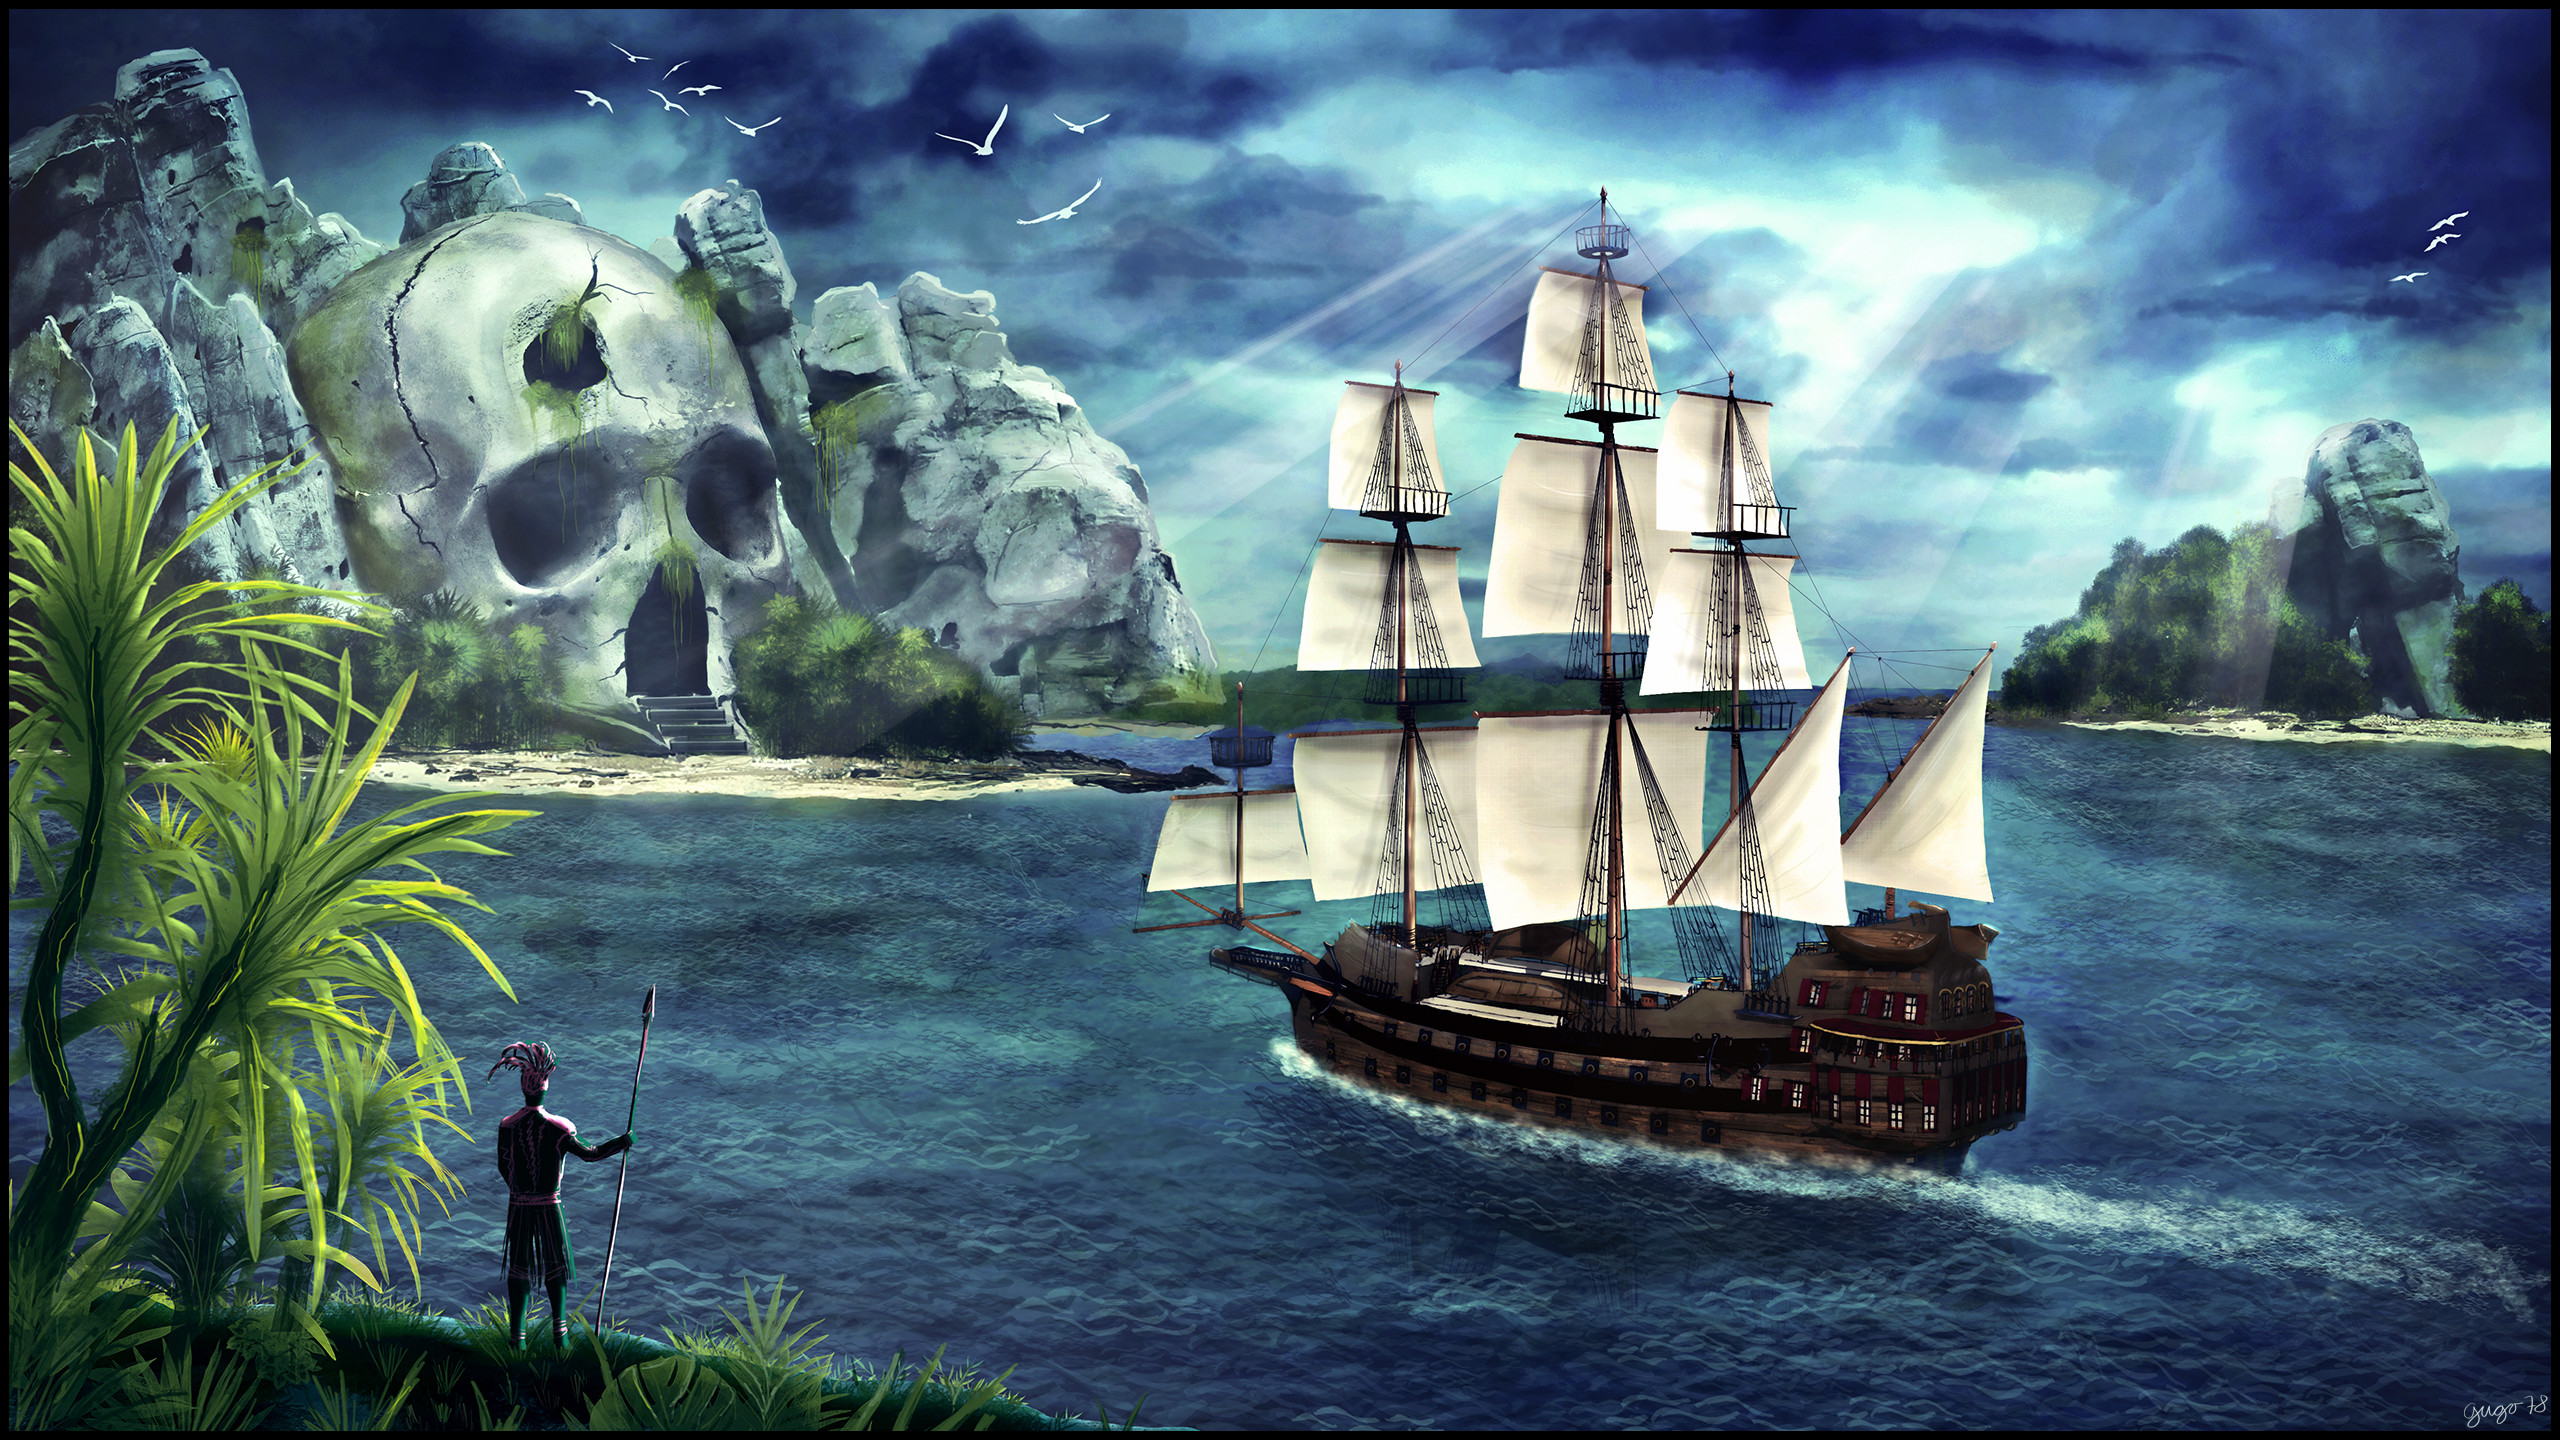 Pirate Ship Wallpaper HD (71+ images)